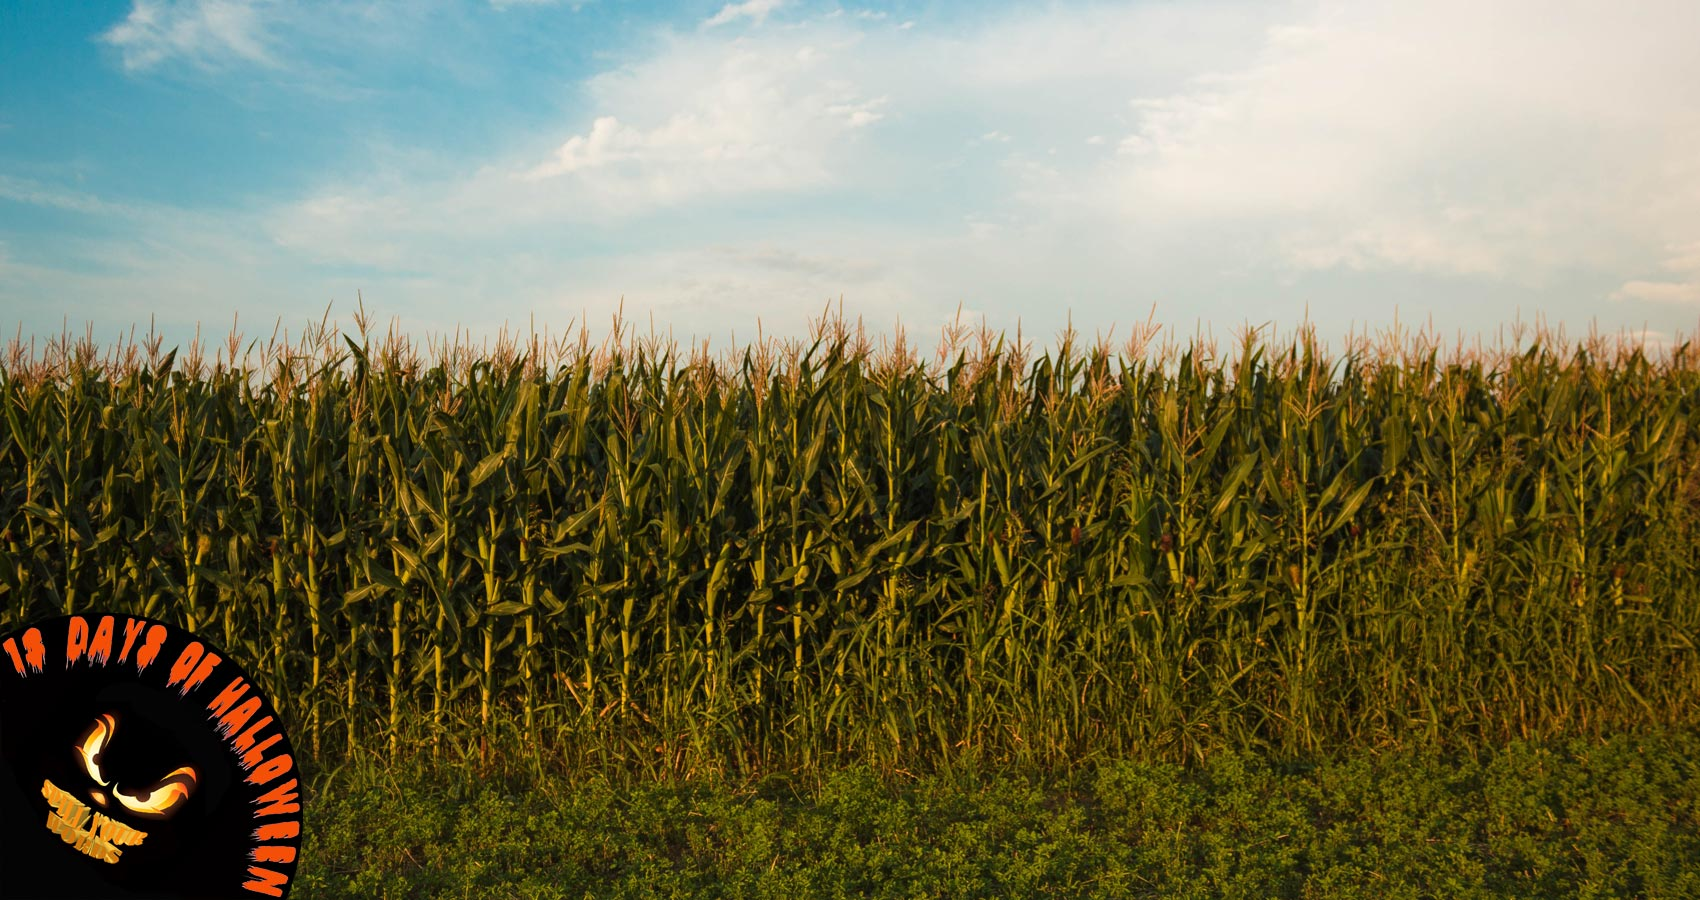 Spirit of The Corn, short story by Richard Prime at Spillwords.com